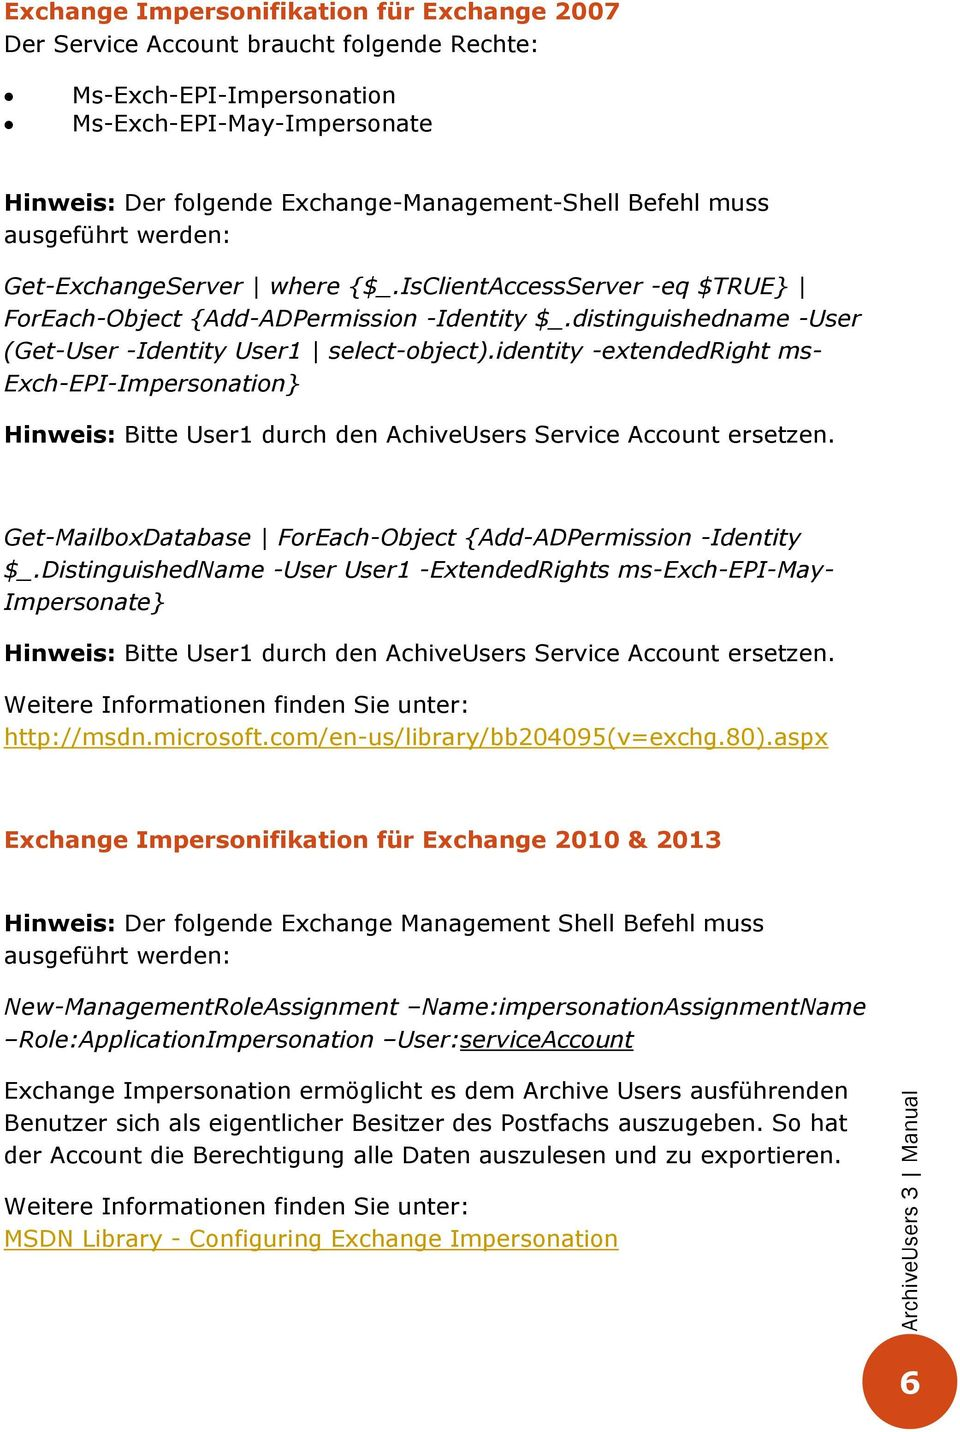 identity -extendedright ms- Exch-EPI-Impersonation} Hinweis: Bitte User1 durch den AchiveUsers Service Account ersetzen. Get-MailboxDatabase ForEach-Object {Add-ADPermission -Identity $_.